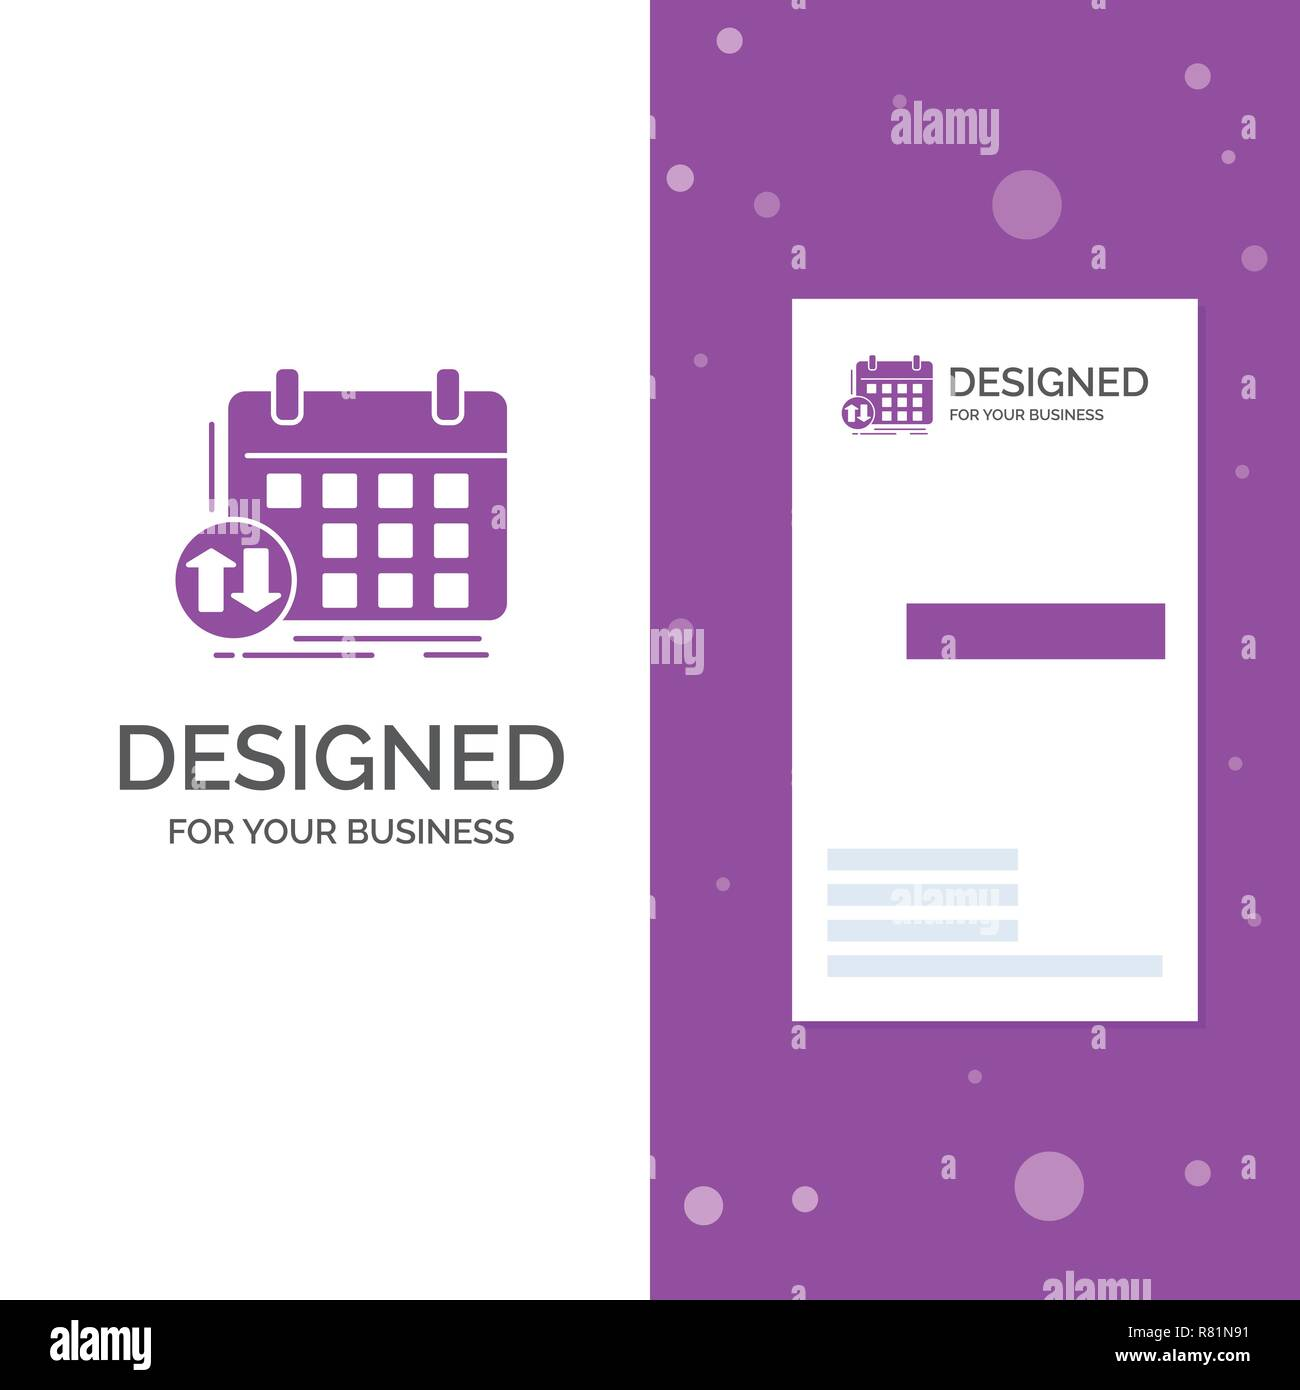 Business Logo For Schedule Classes Timetable Appointment Event Vertical Purple Visiting Card Template Creative Background Vector Illu